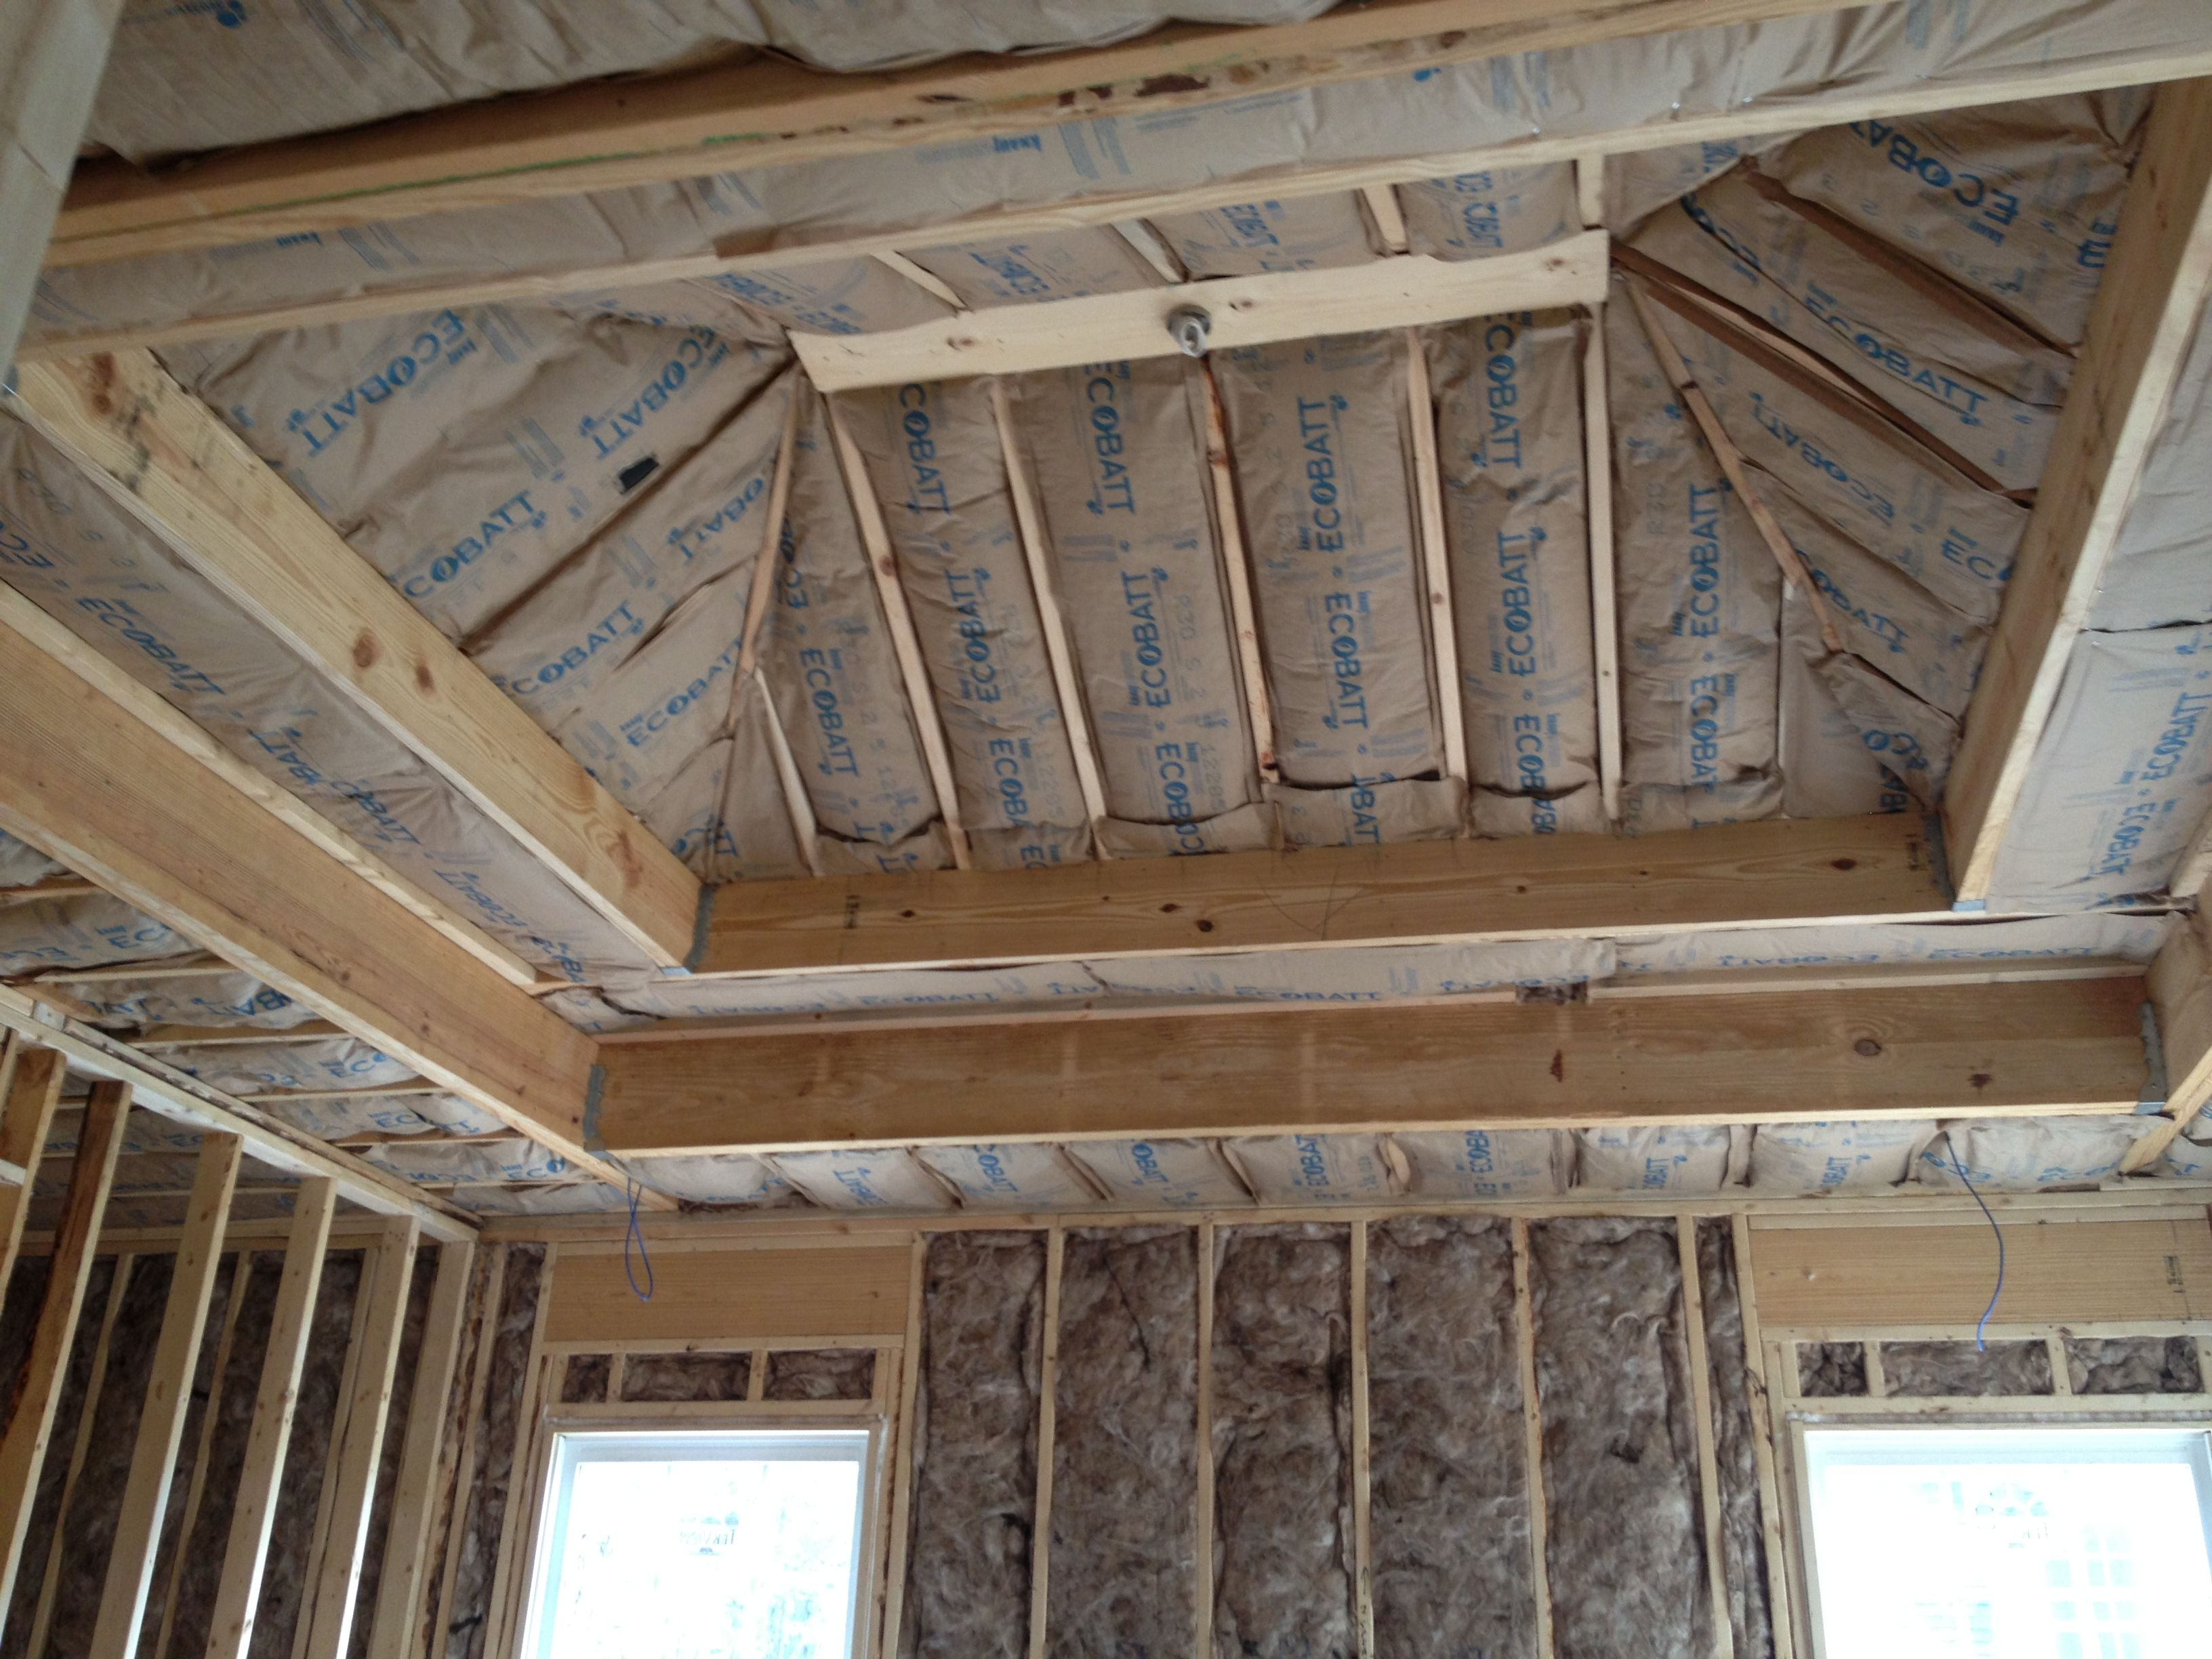 Vaulted Ceiling Framing Plan | www.lightneasy.net